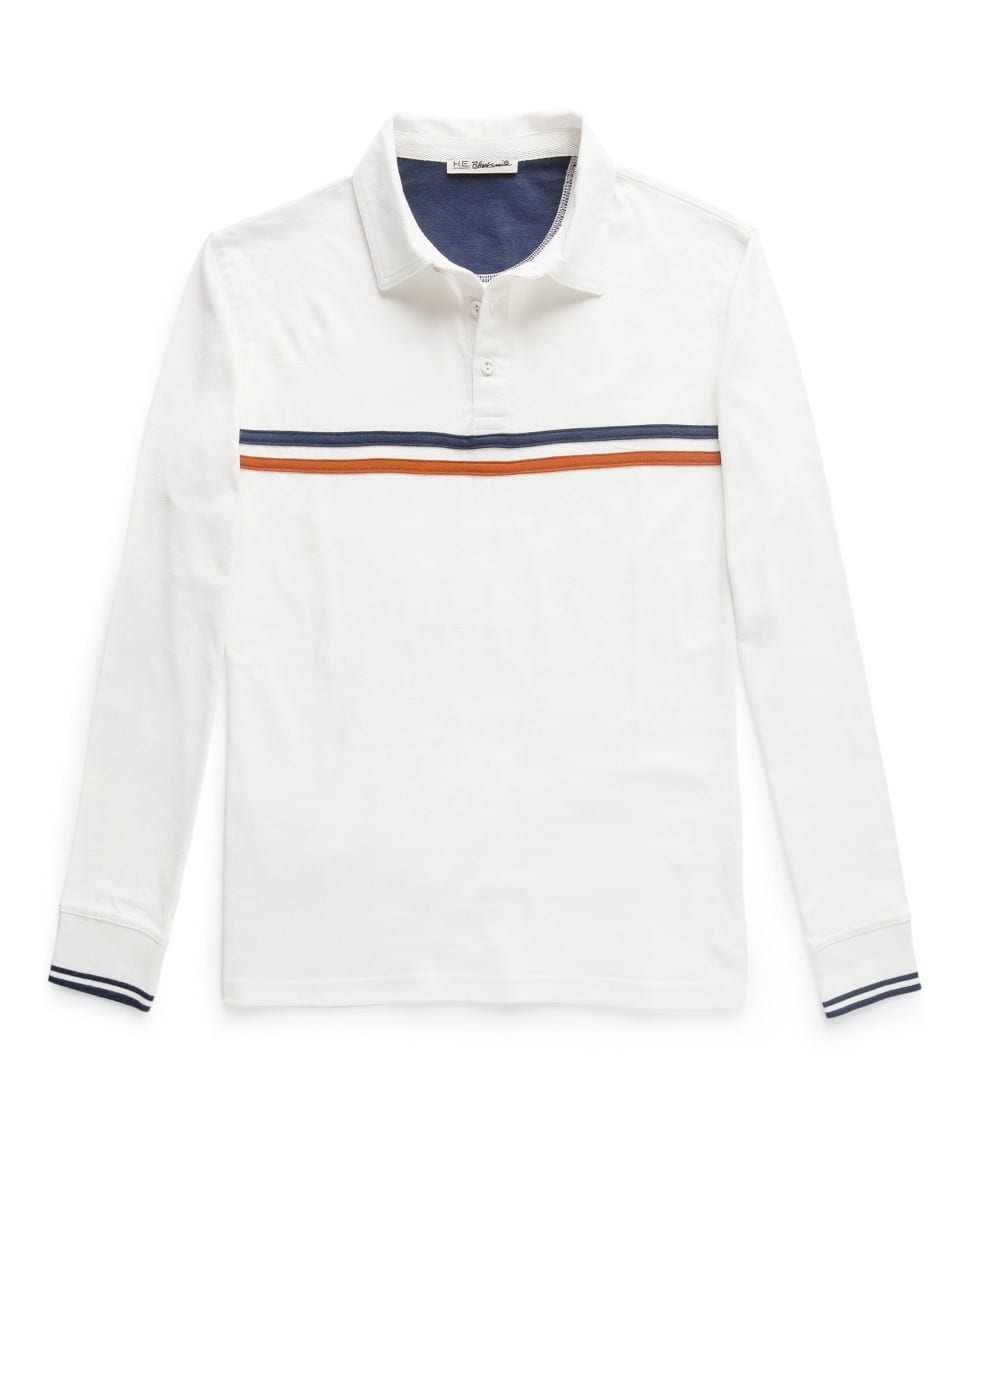 Contrast striped cotton polo shirt